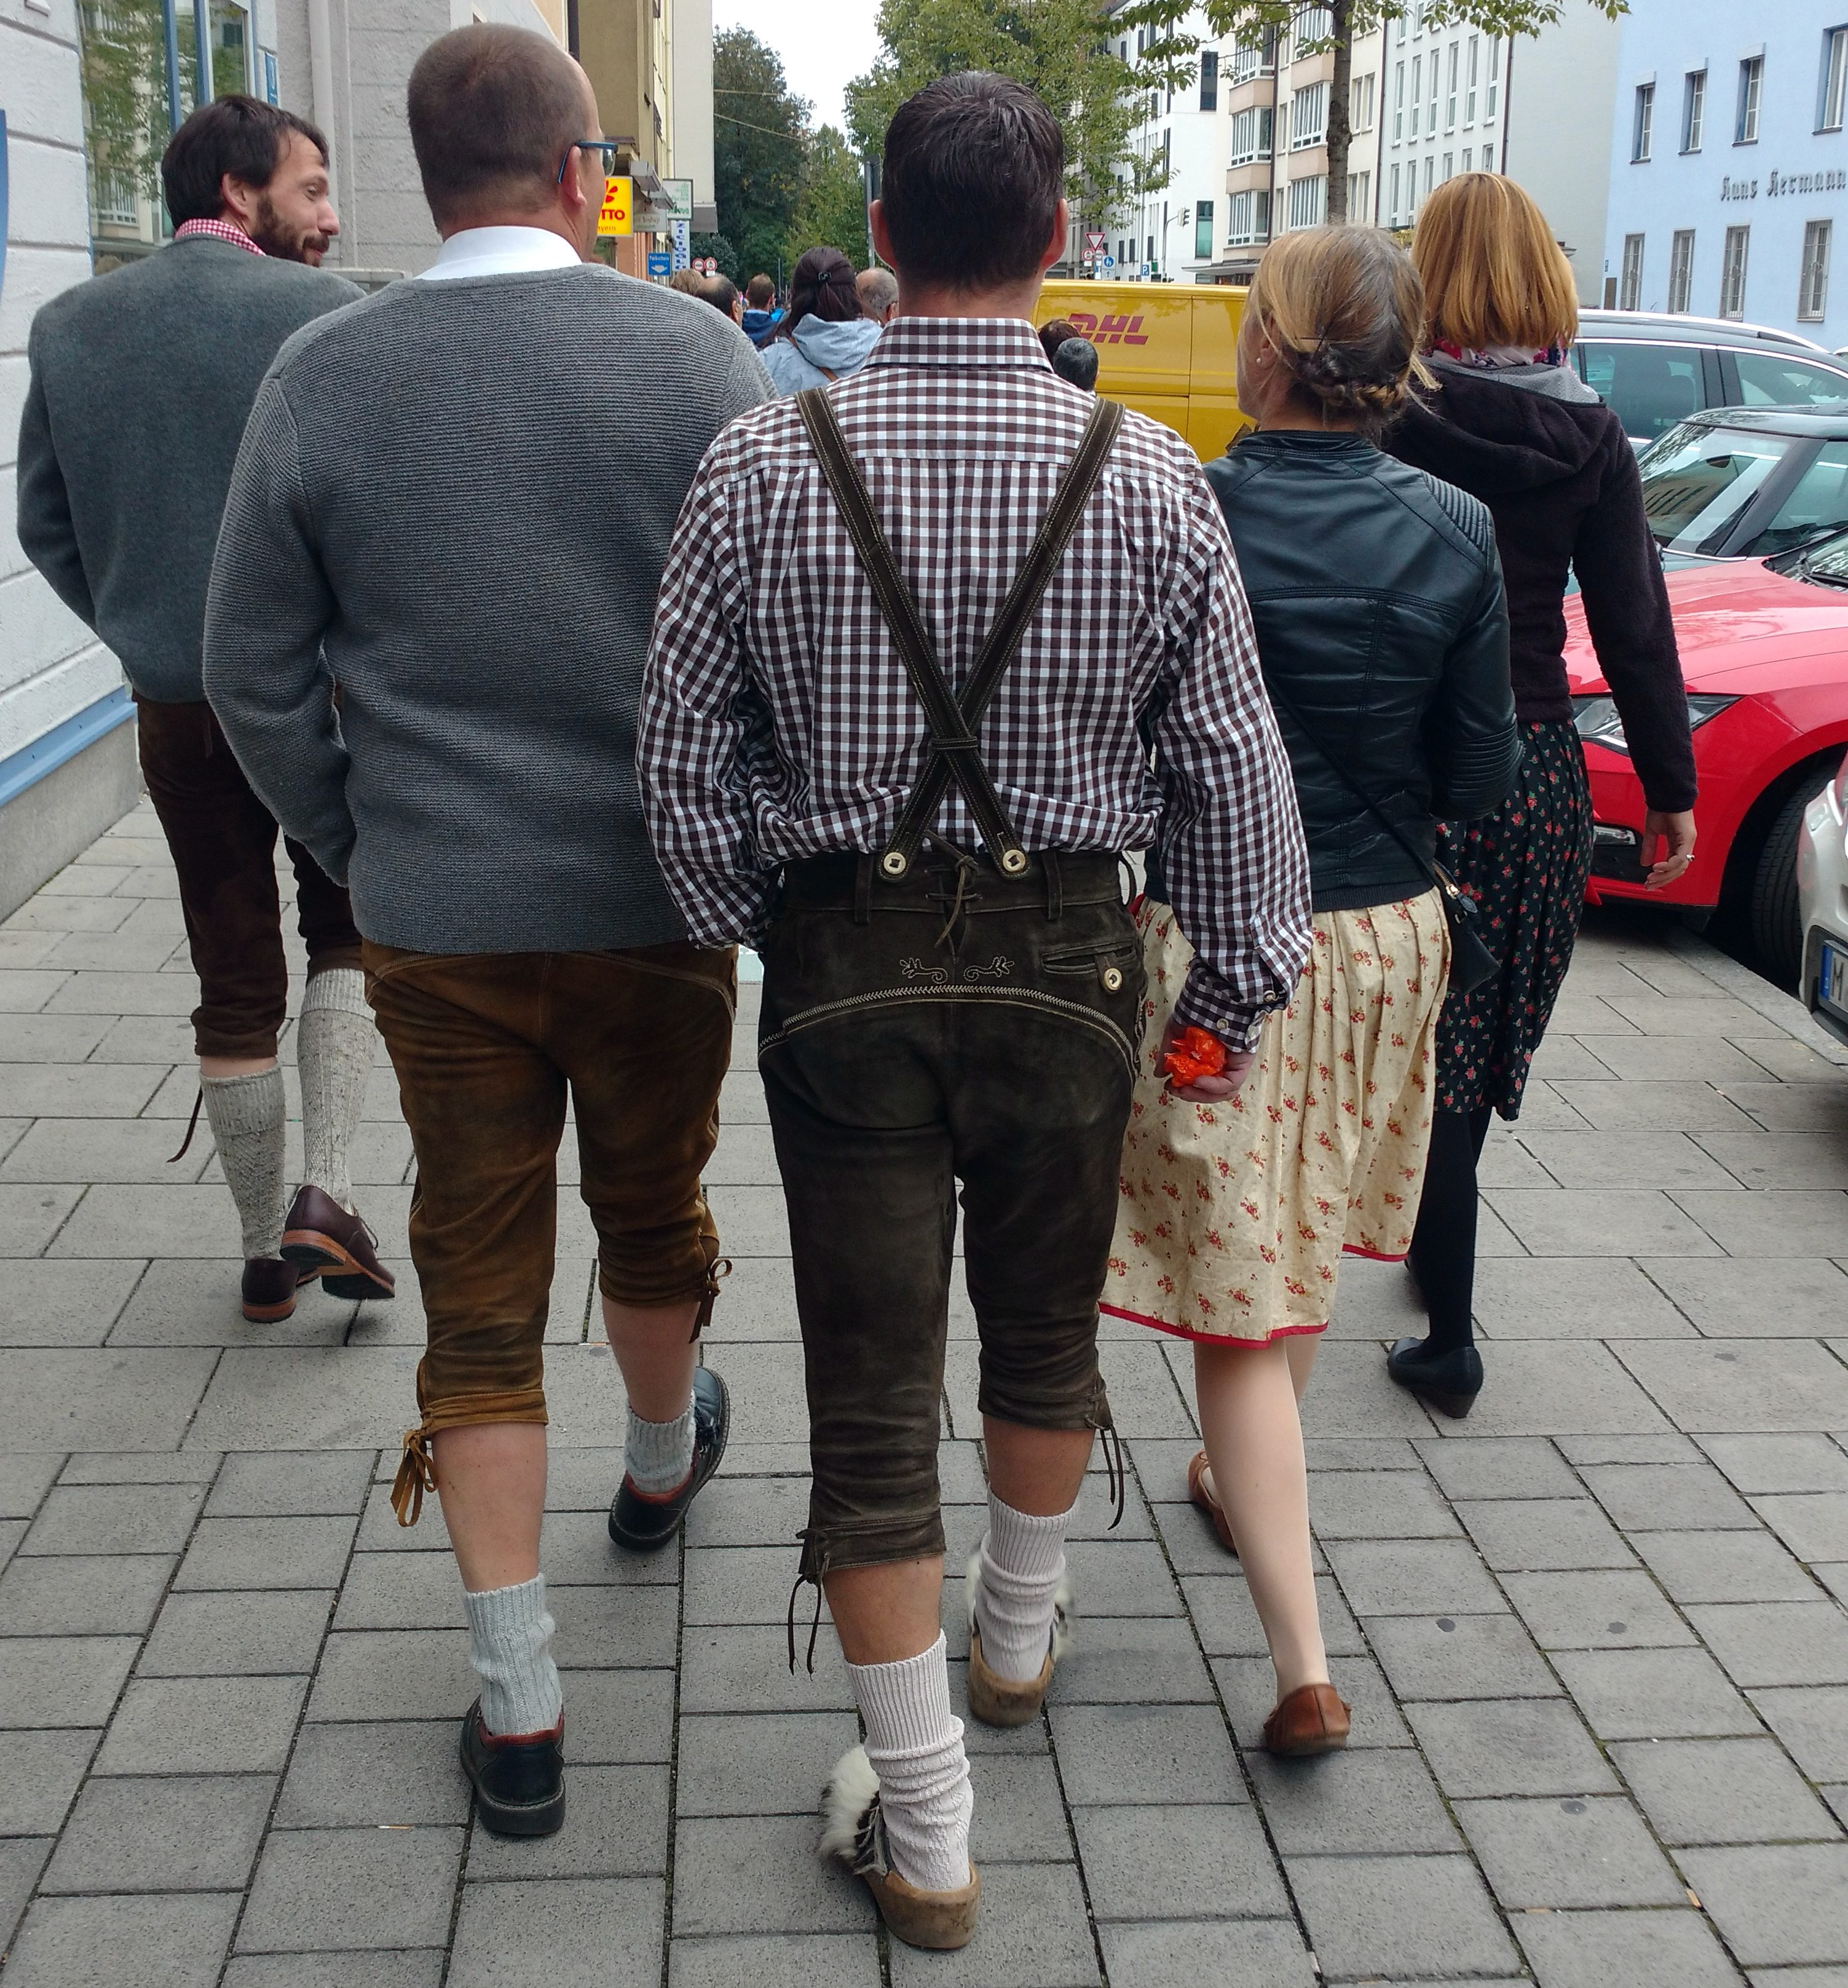 Germany with a family